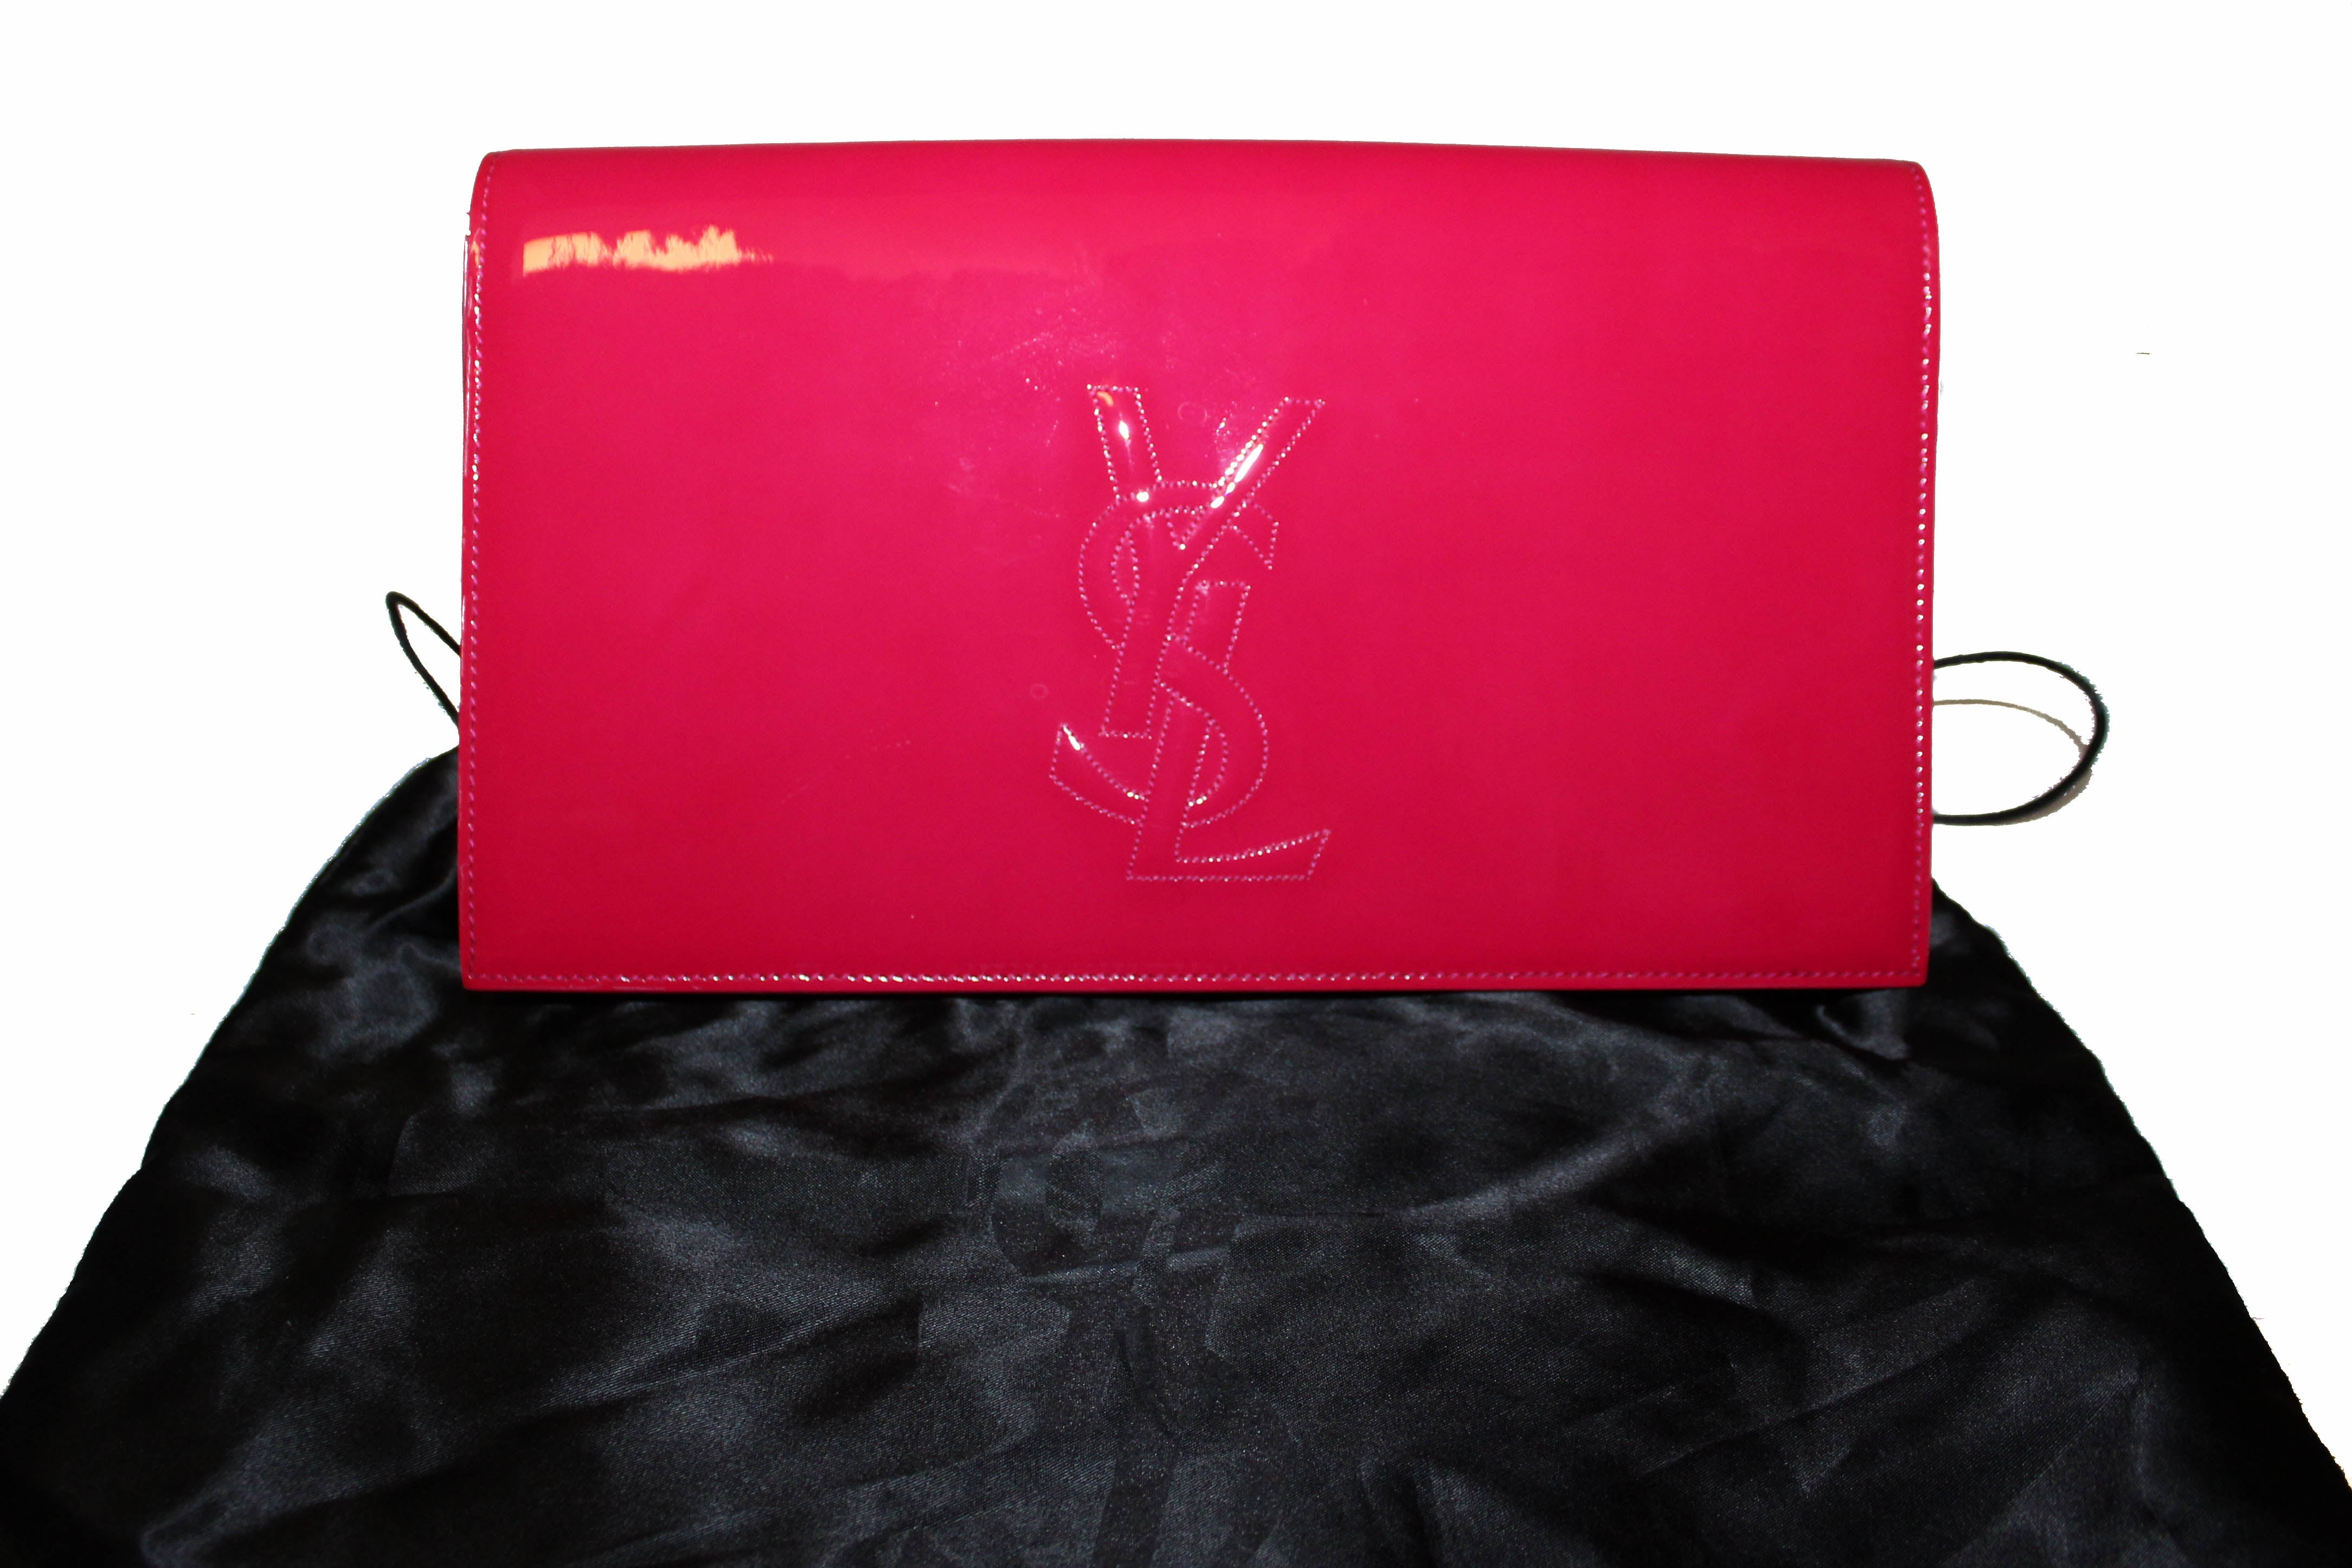 Authentic Yves Saint Laurent YSL Pink Patent Leather Clutch